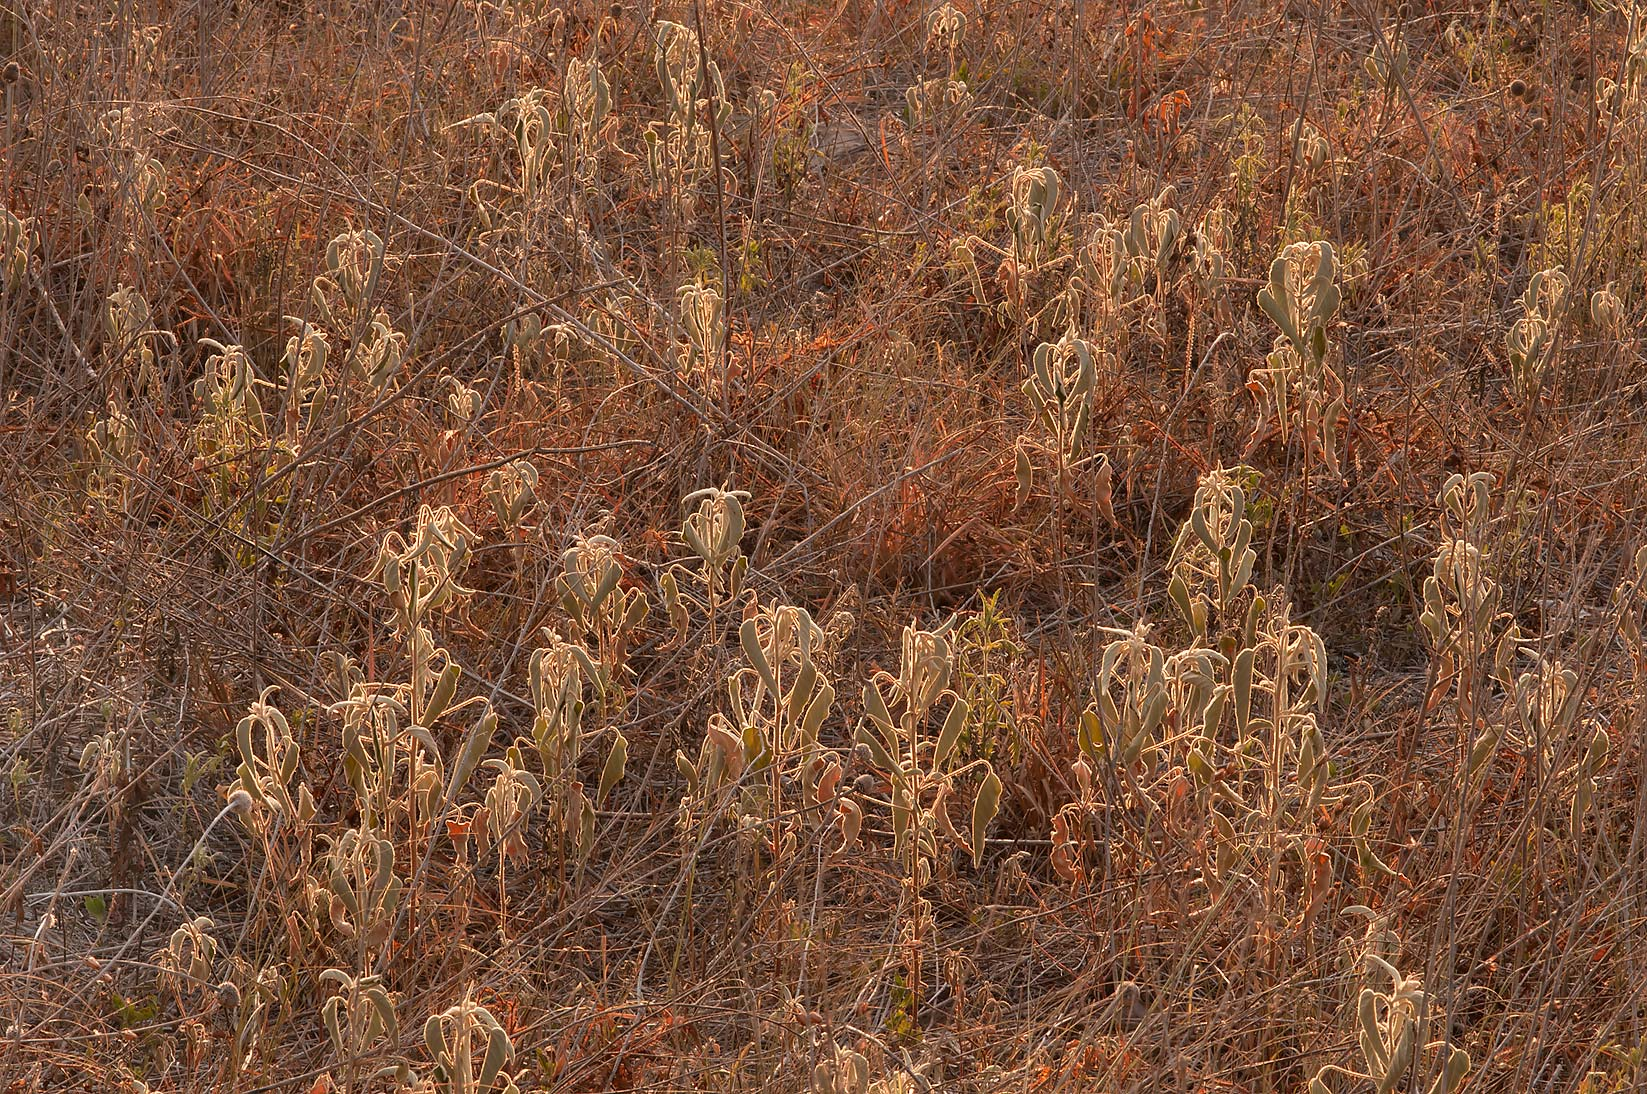 Dried prairie in Washington-on-the-Brazos State Historic Site. Washington, Texas